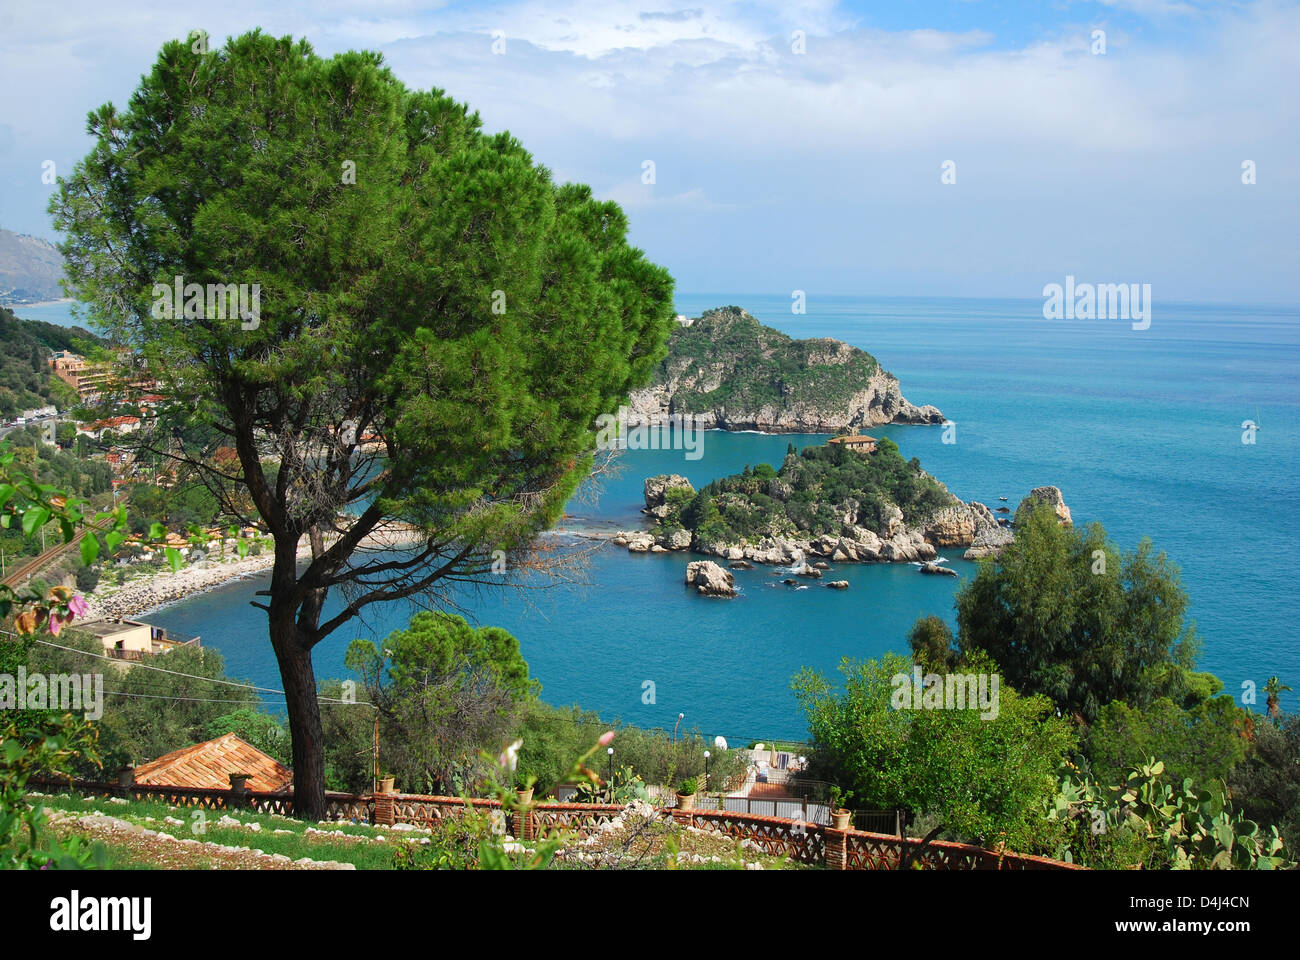 Isola Bella is a small island near Taormina, Sicily, southern Italy. - Stock Image